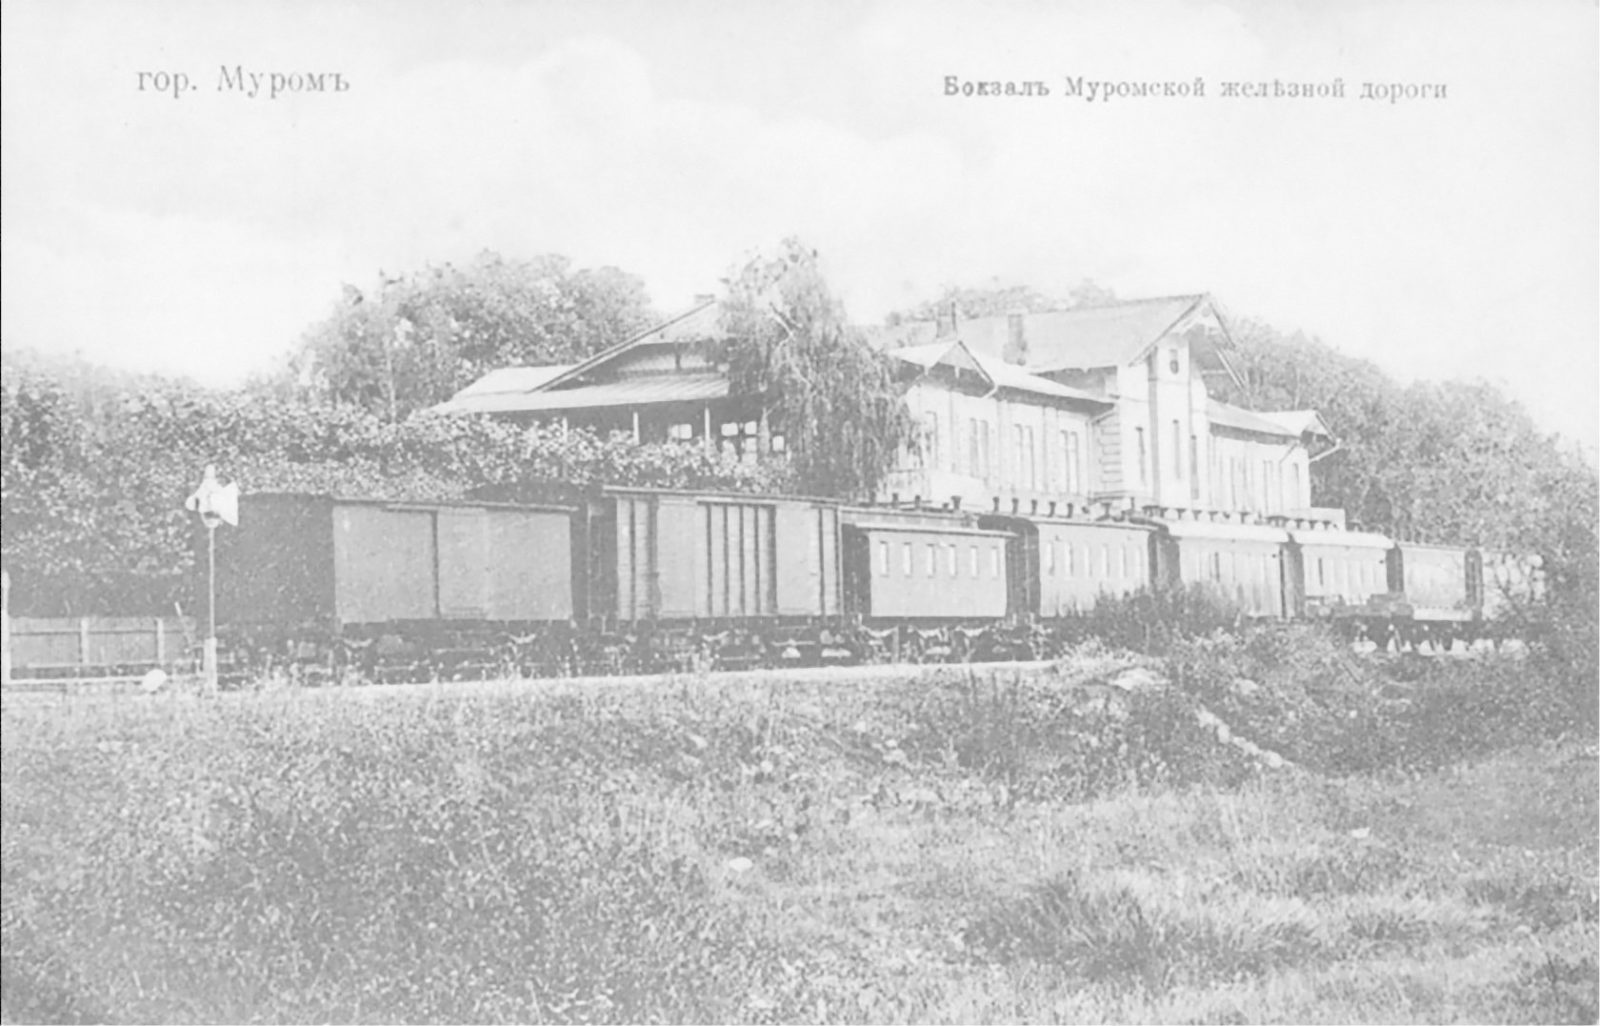 Murom, The station of the Murom Railway.